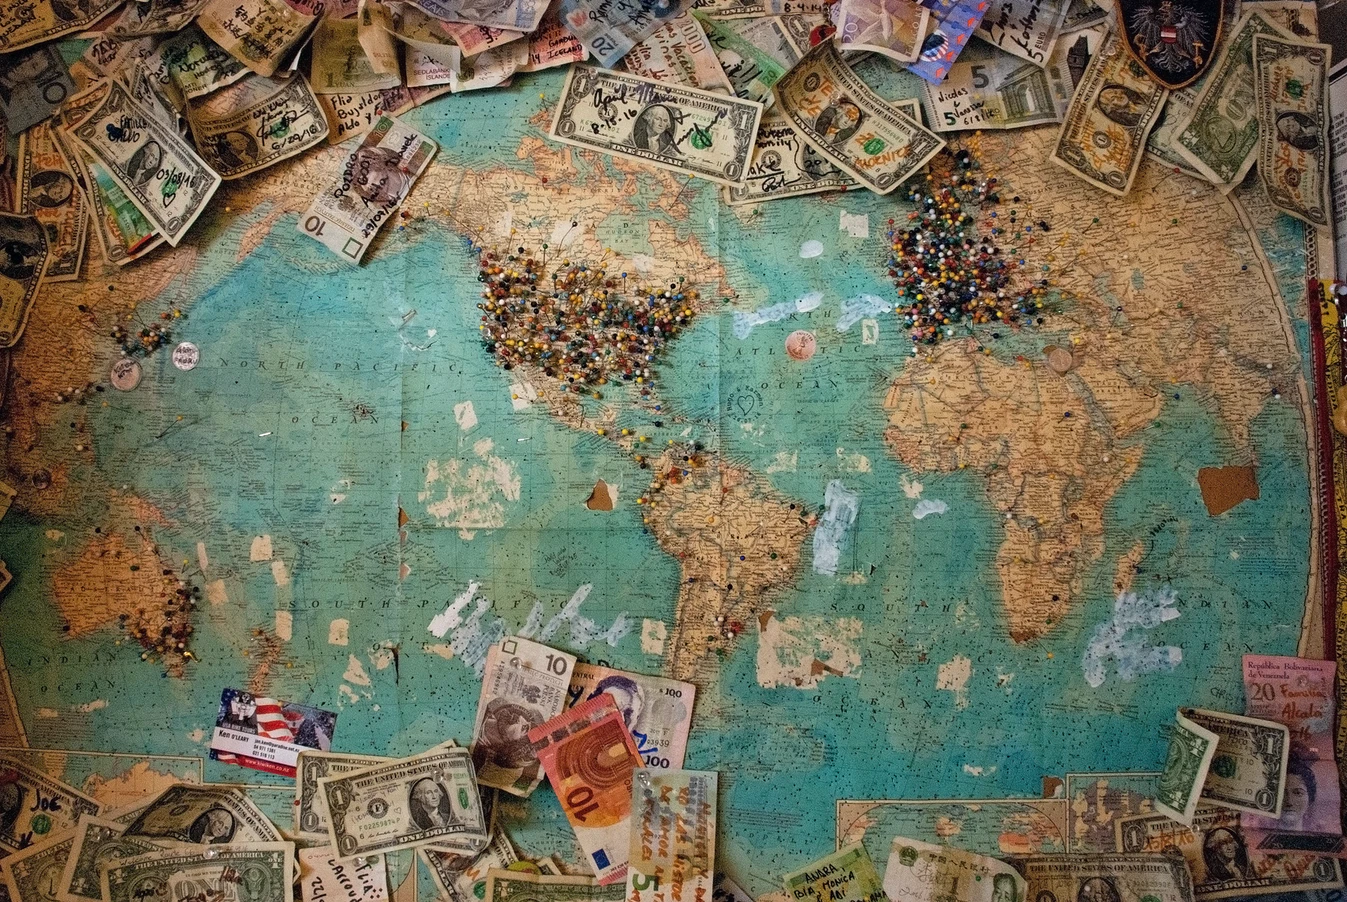 a map of the world with various currencies